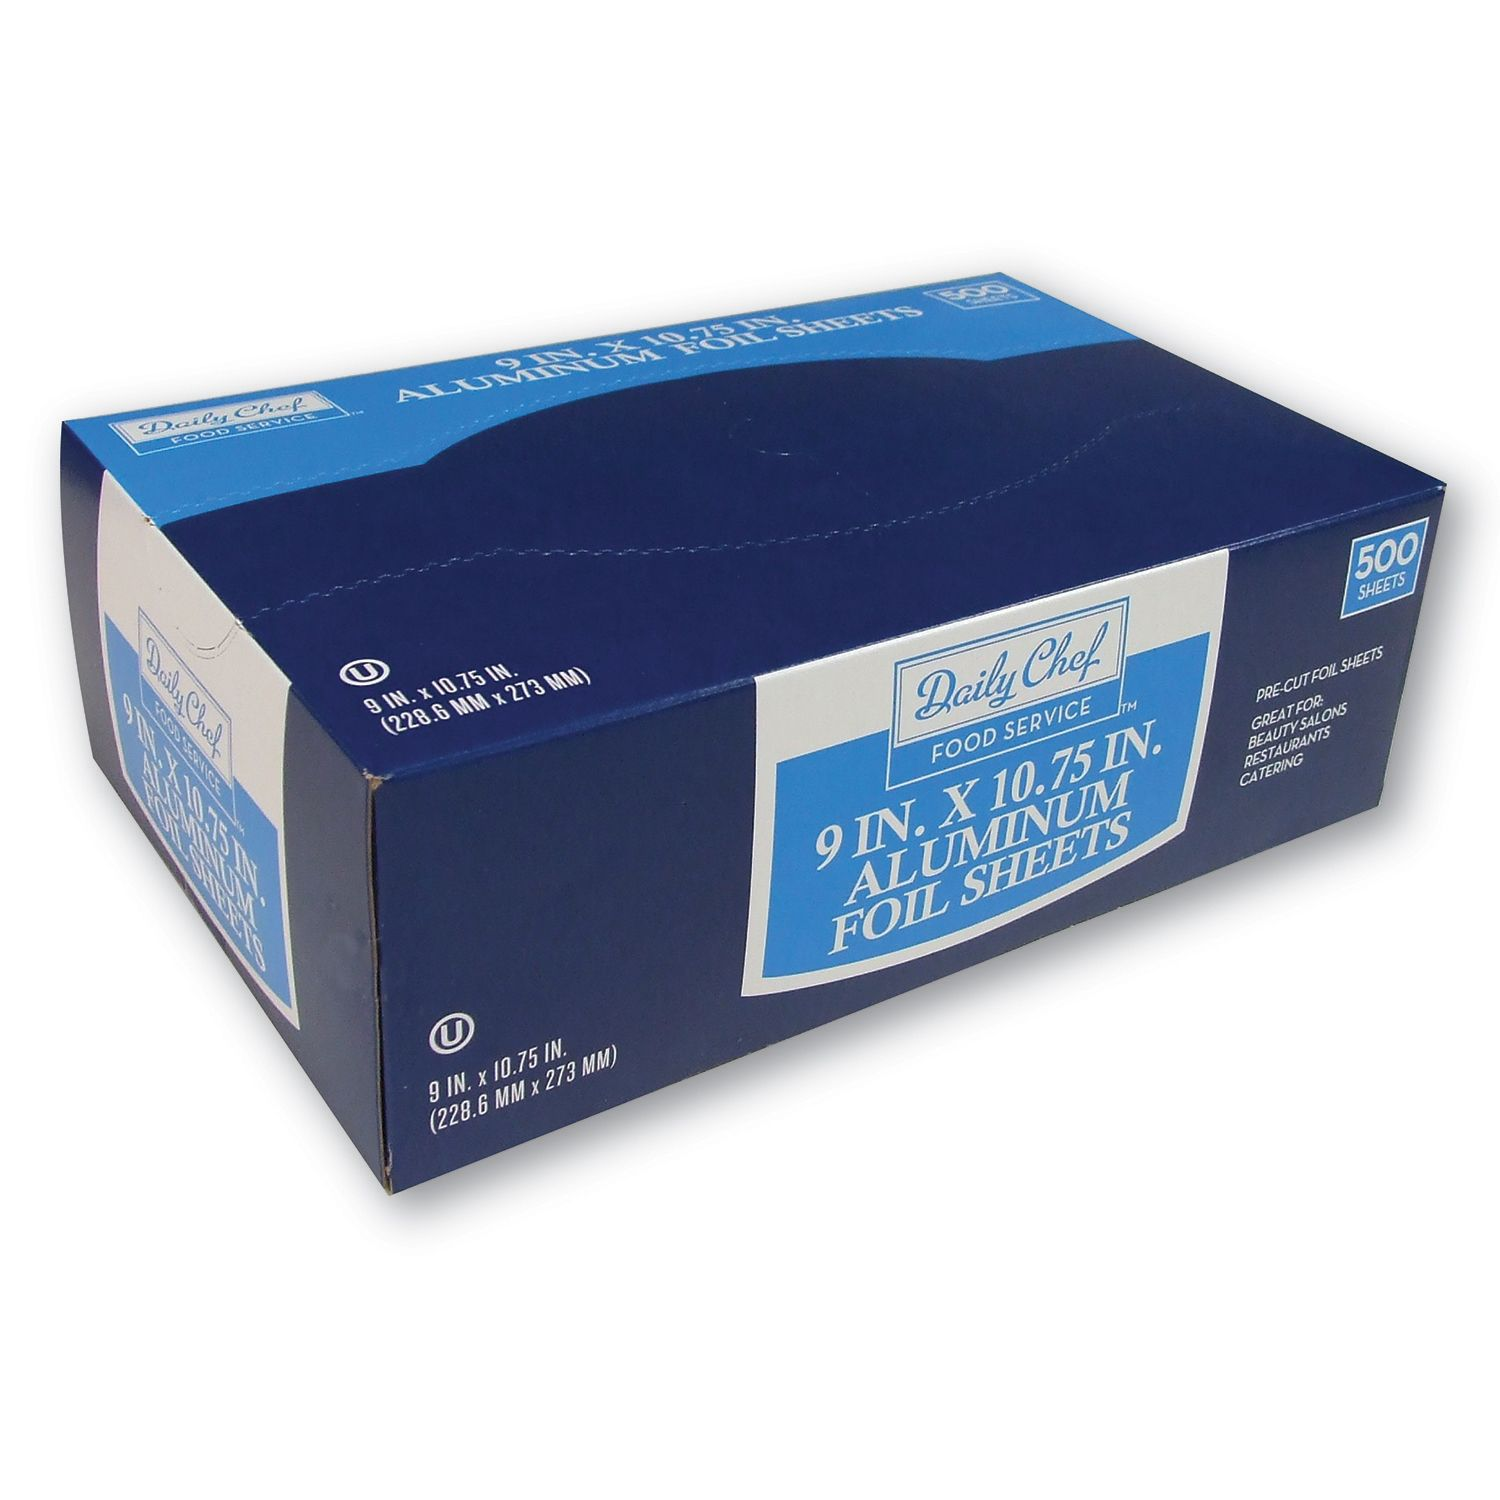 Bakers & Chef's Bakers & Chefs Foil Sheets 9 x 10.75in - 500ct at Sears.com